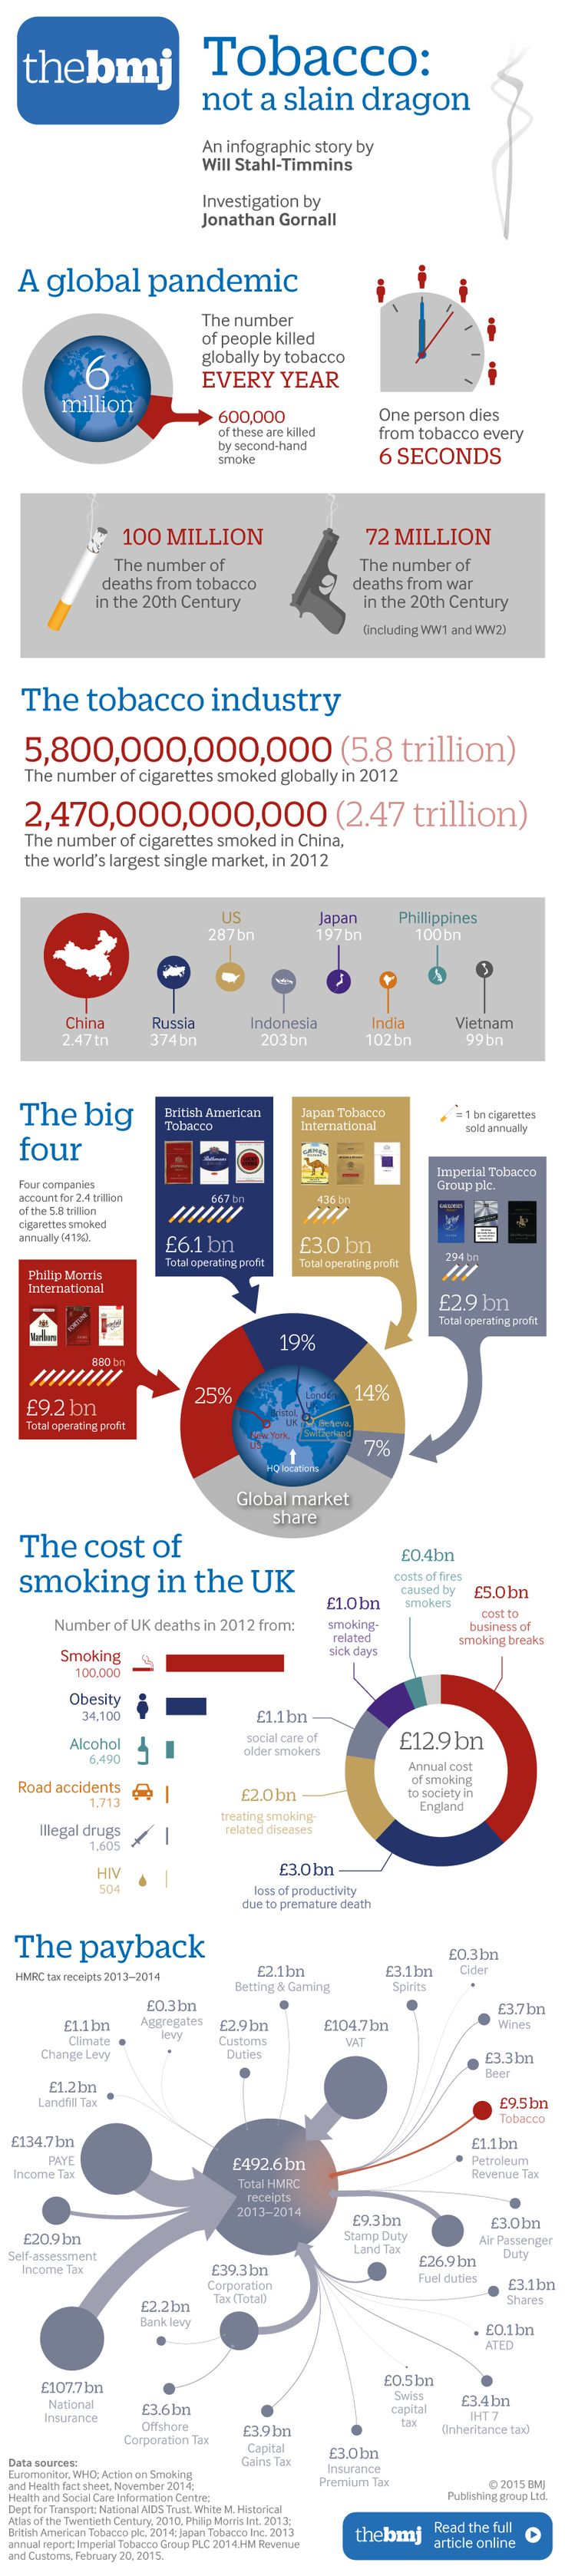 Slaying the dragon: how the #tobacco industry refuses to die. This Infographic was published in the BMJ on 22 April 2015